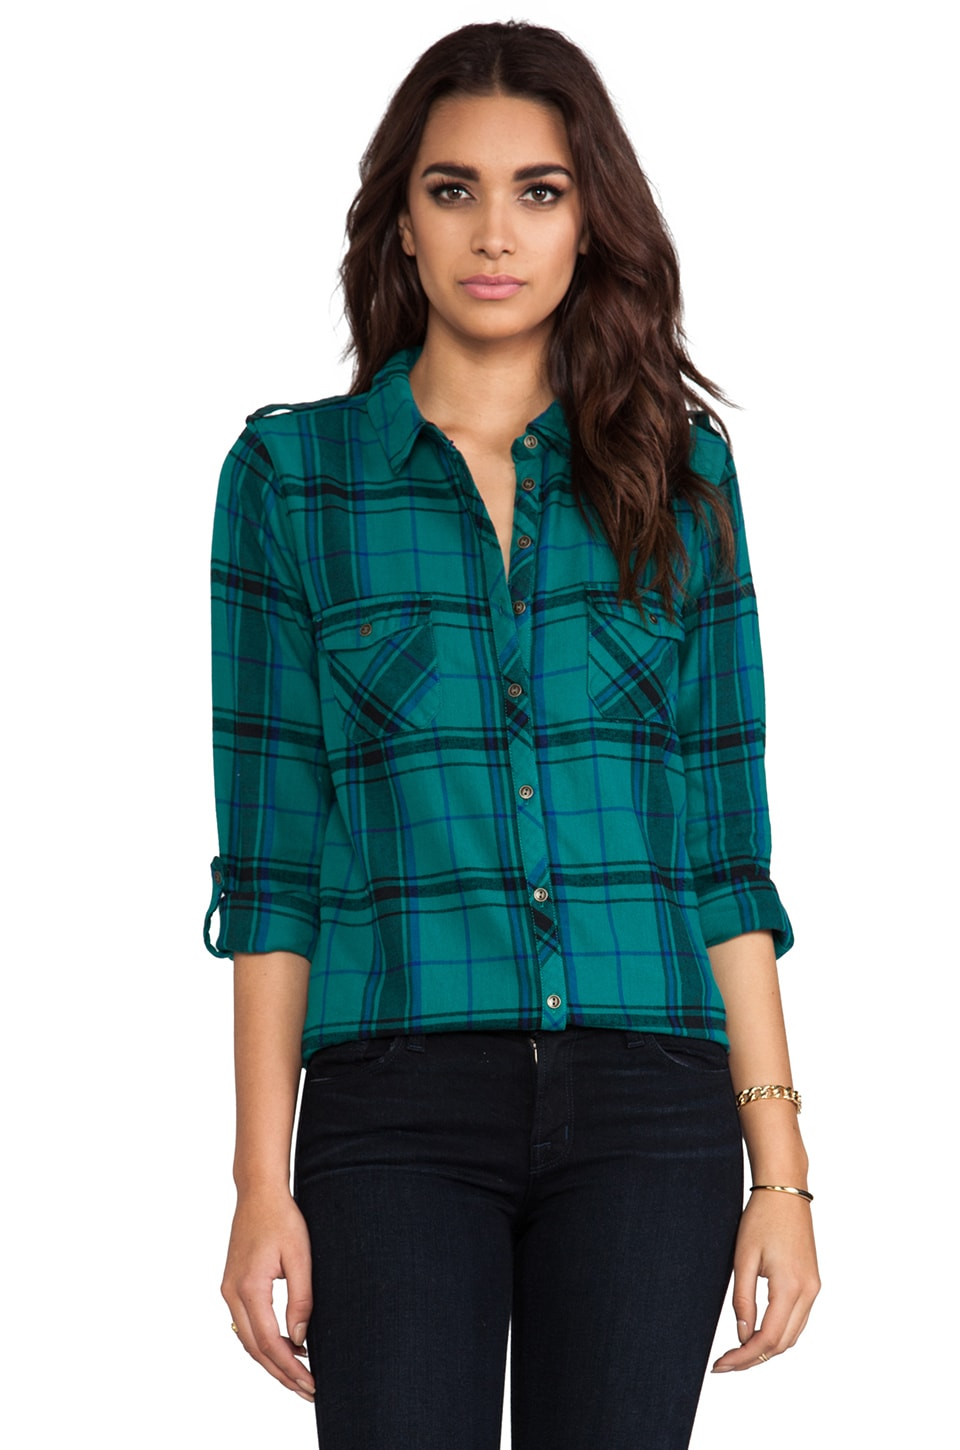 C&C California Heritage Flannel Button Down in Spruce